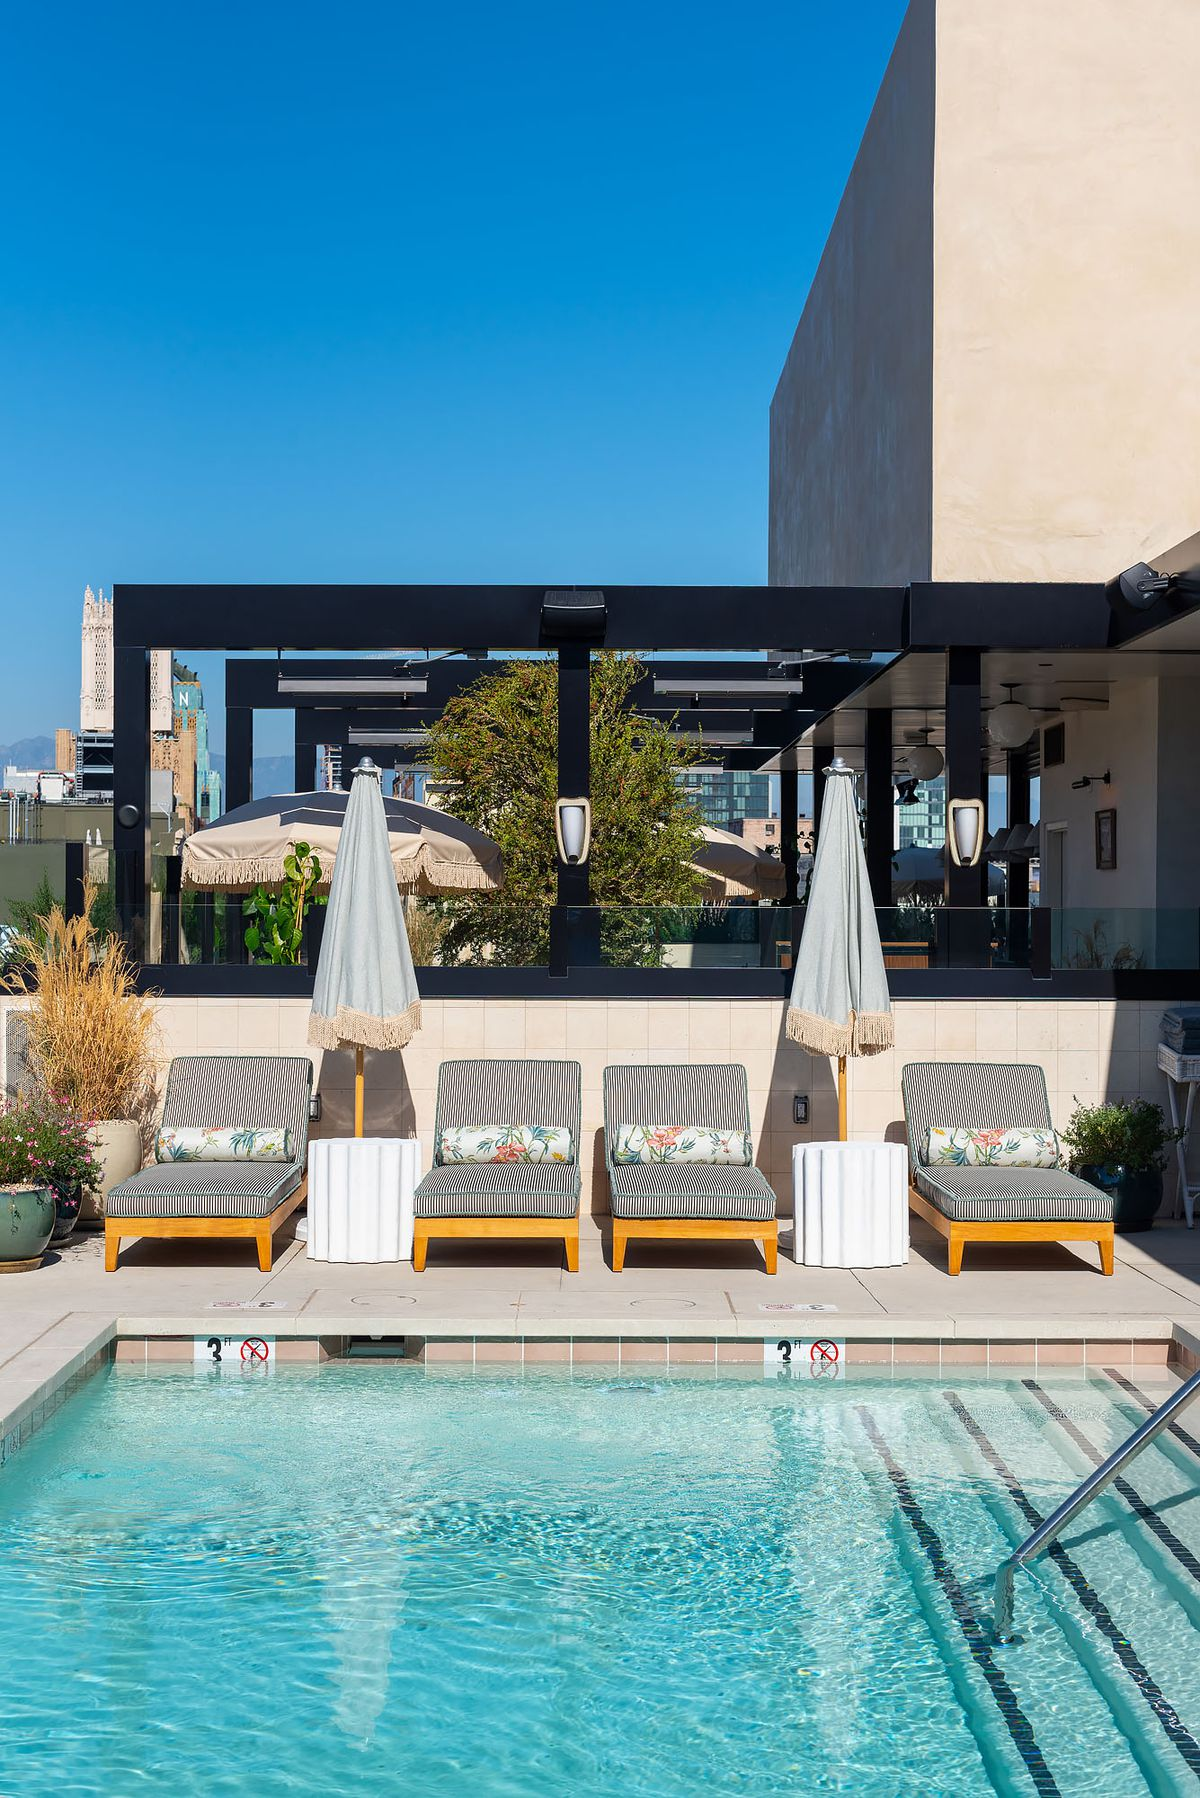 Lounge seating at a rooftop pool.